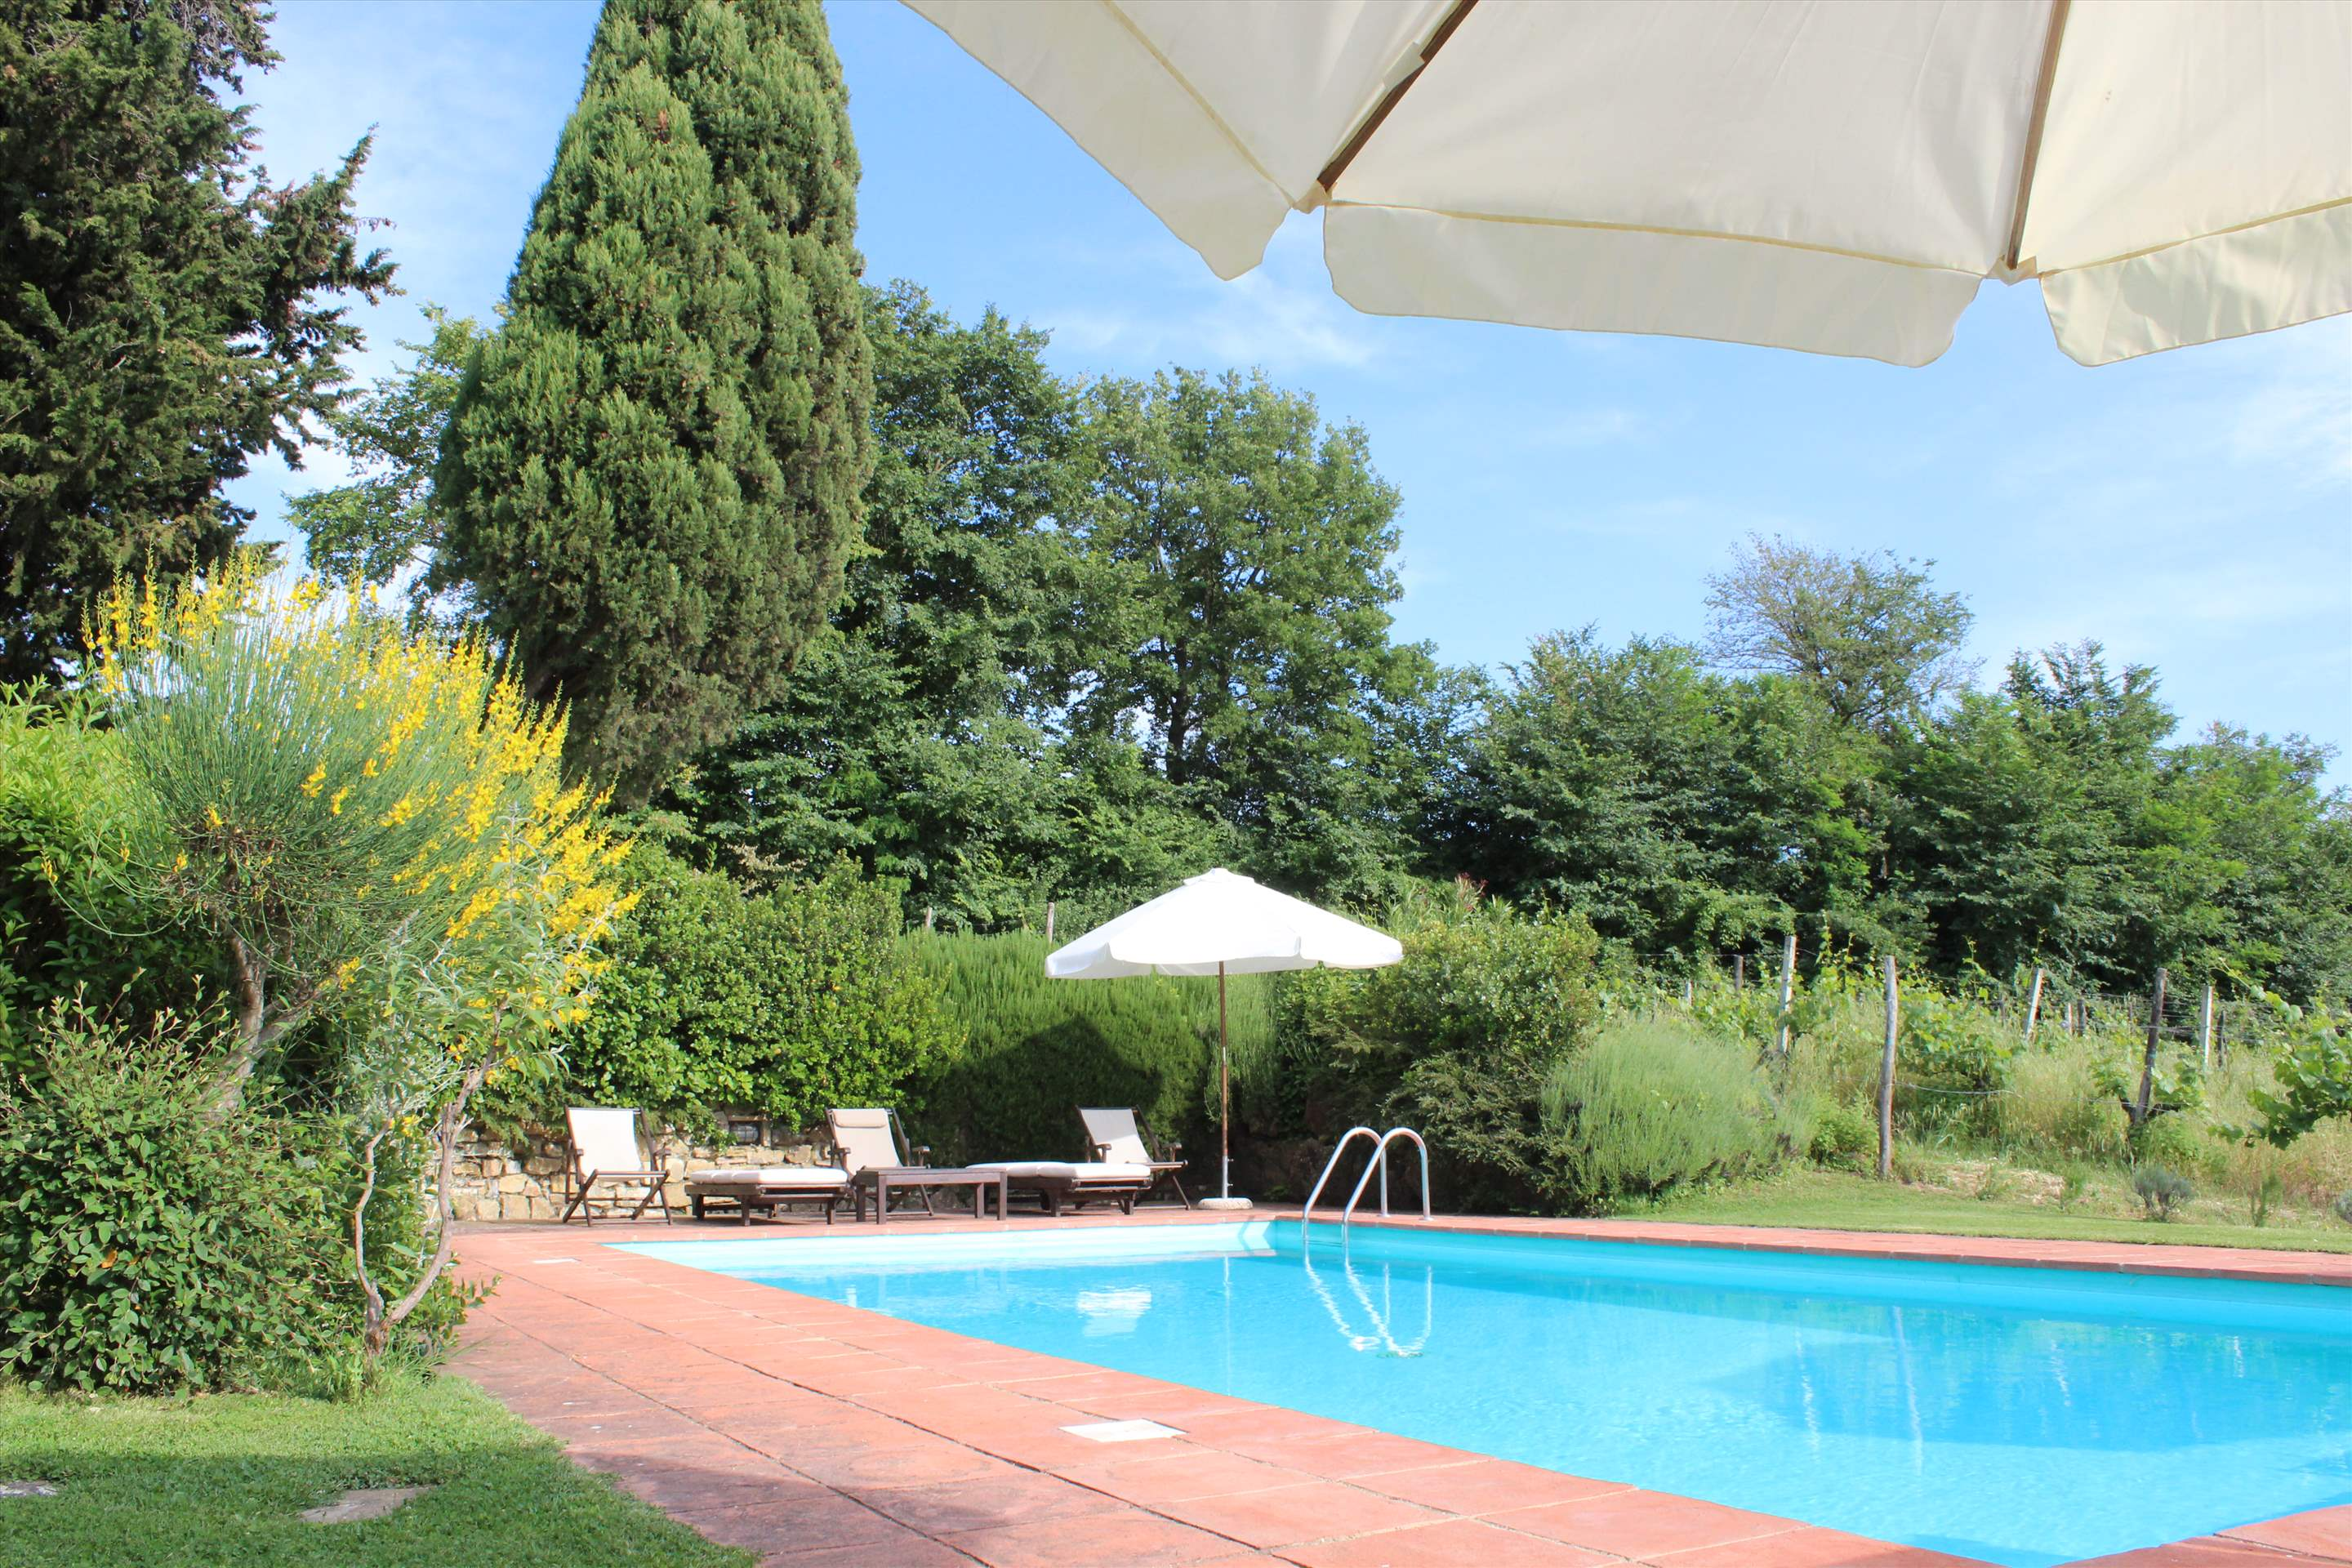 Casas Ferruzzi, 8 bedroom apartment in Chianti & Countryside, Tuscany Photo #2